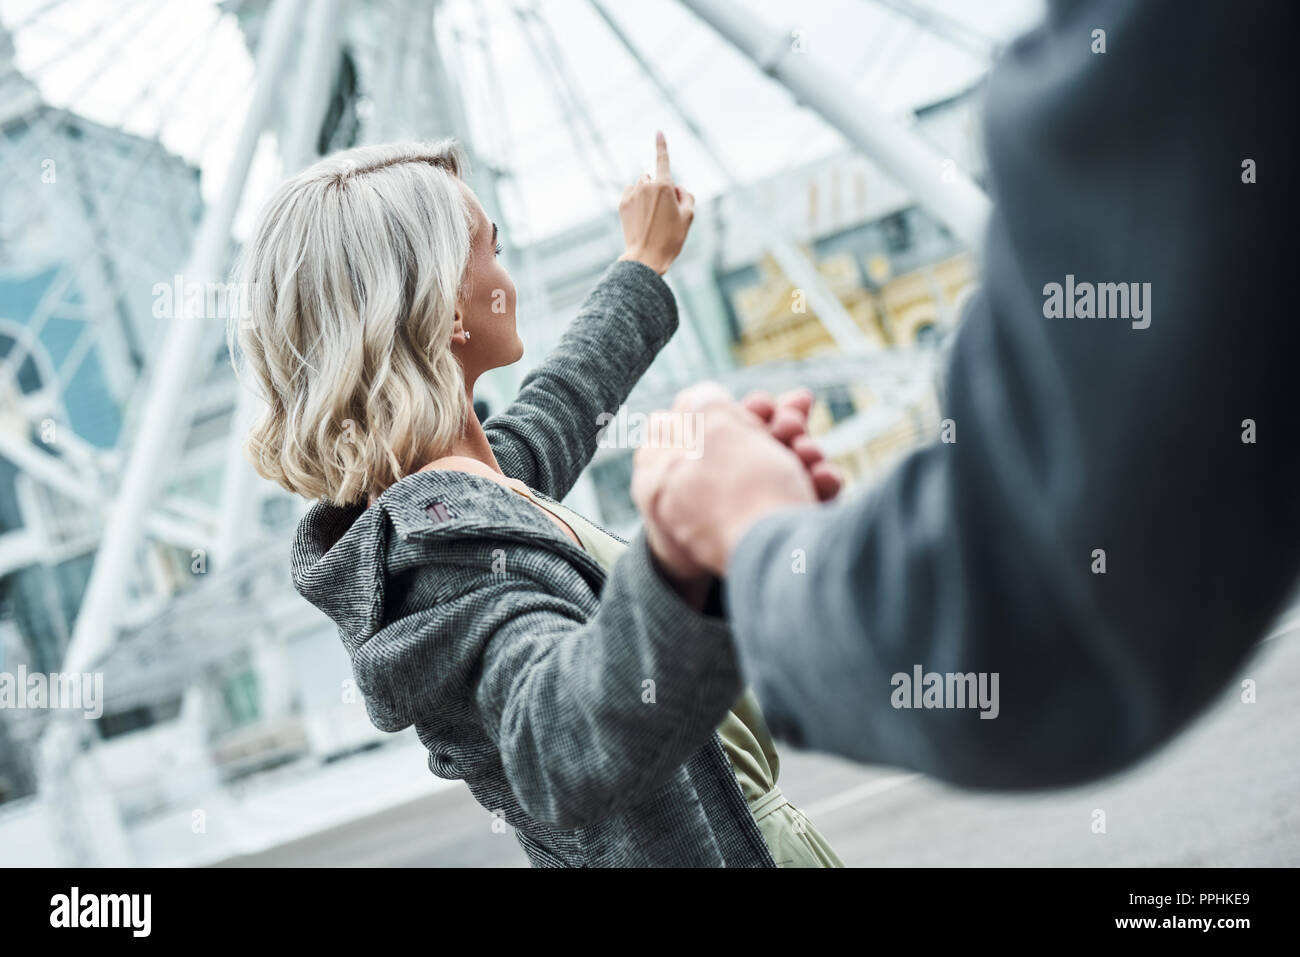 Romantic date outdoors. Young couple walking at entertainment park holding hands woman close-up pointing at ferris wheel excited - Stock Image